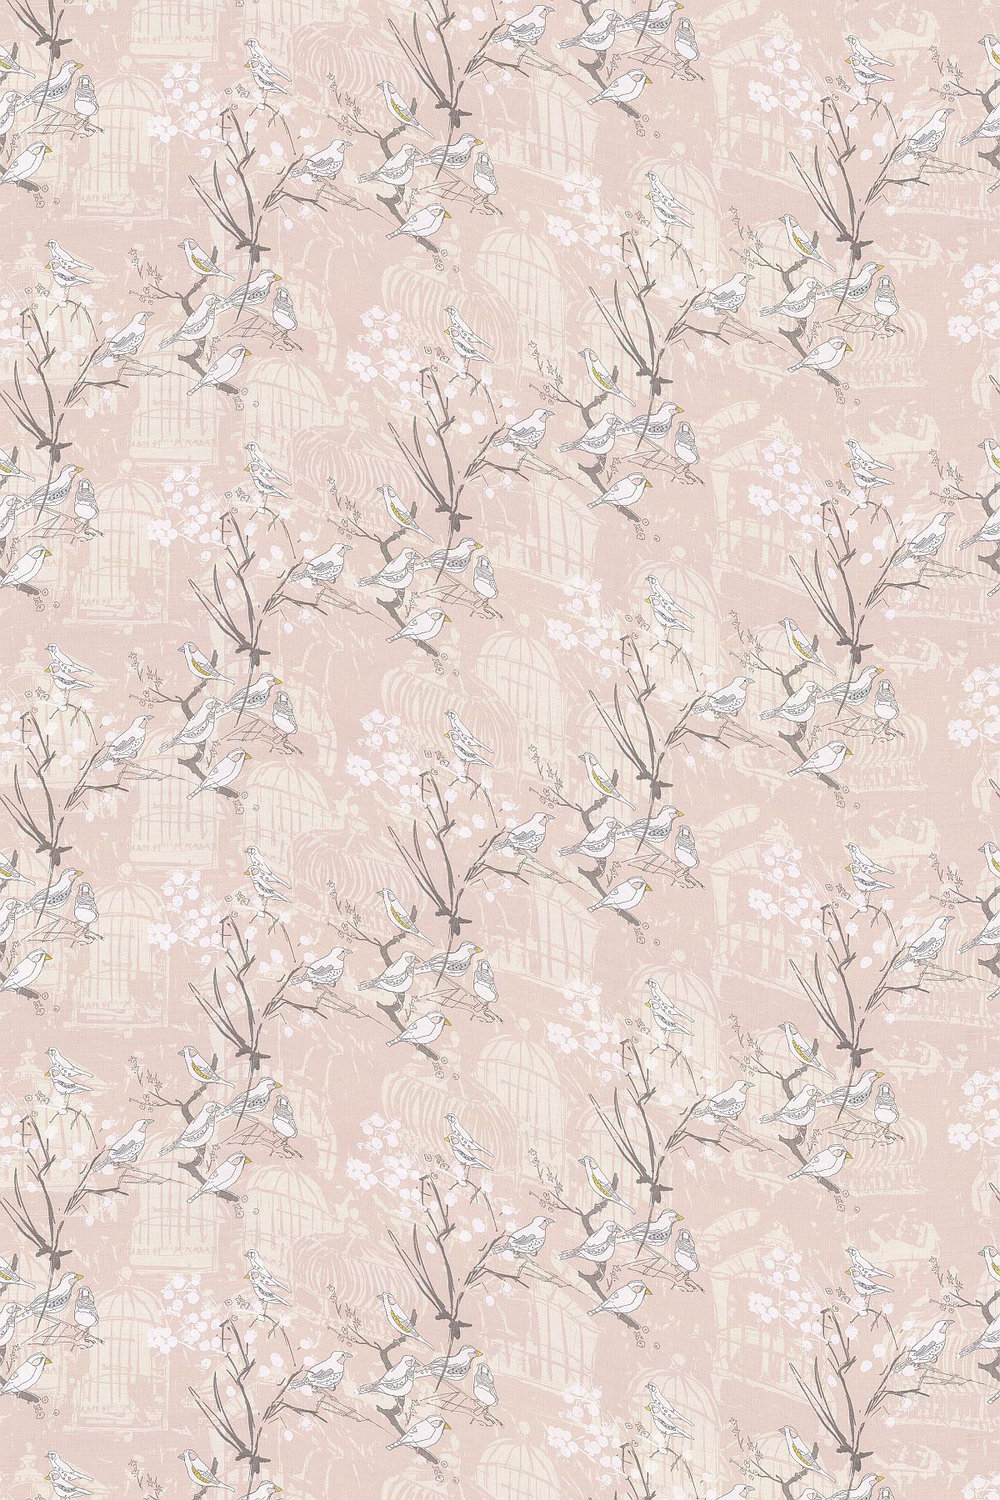 Belynda Sharples Linen Union Finches 01 Pink Fabric - Product code: BS-LU-FIN-01